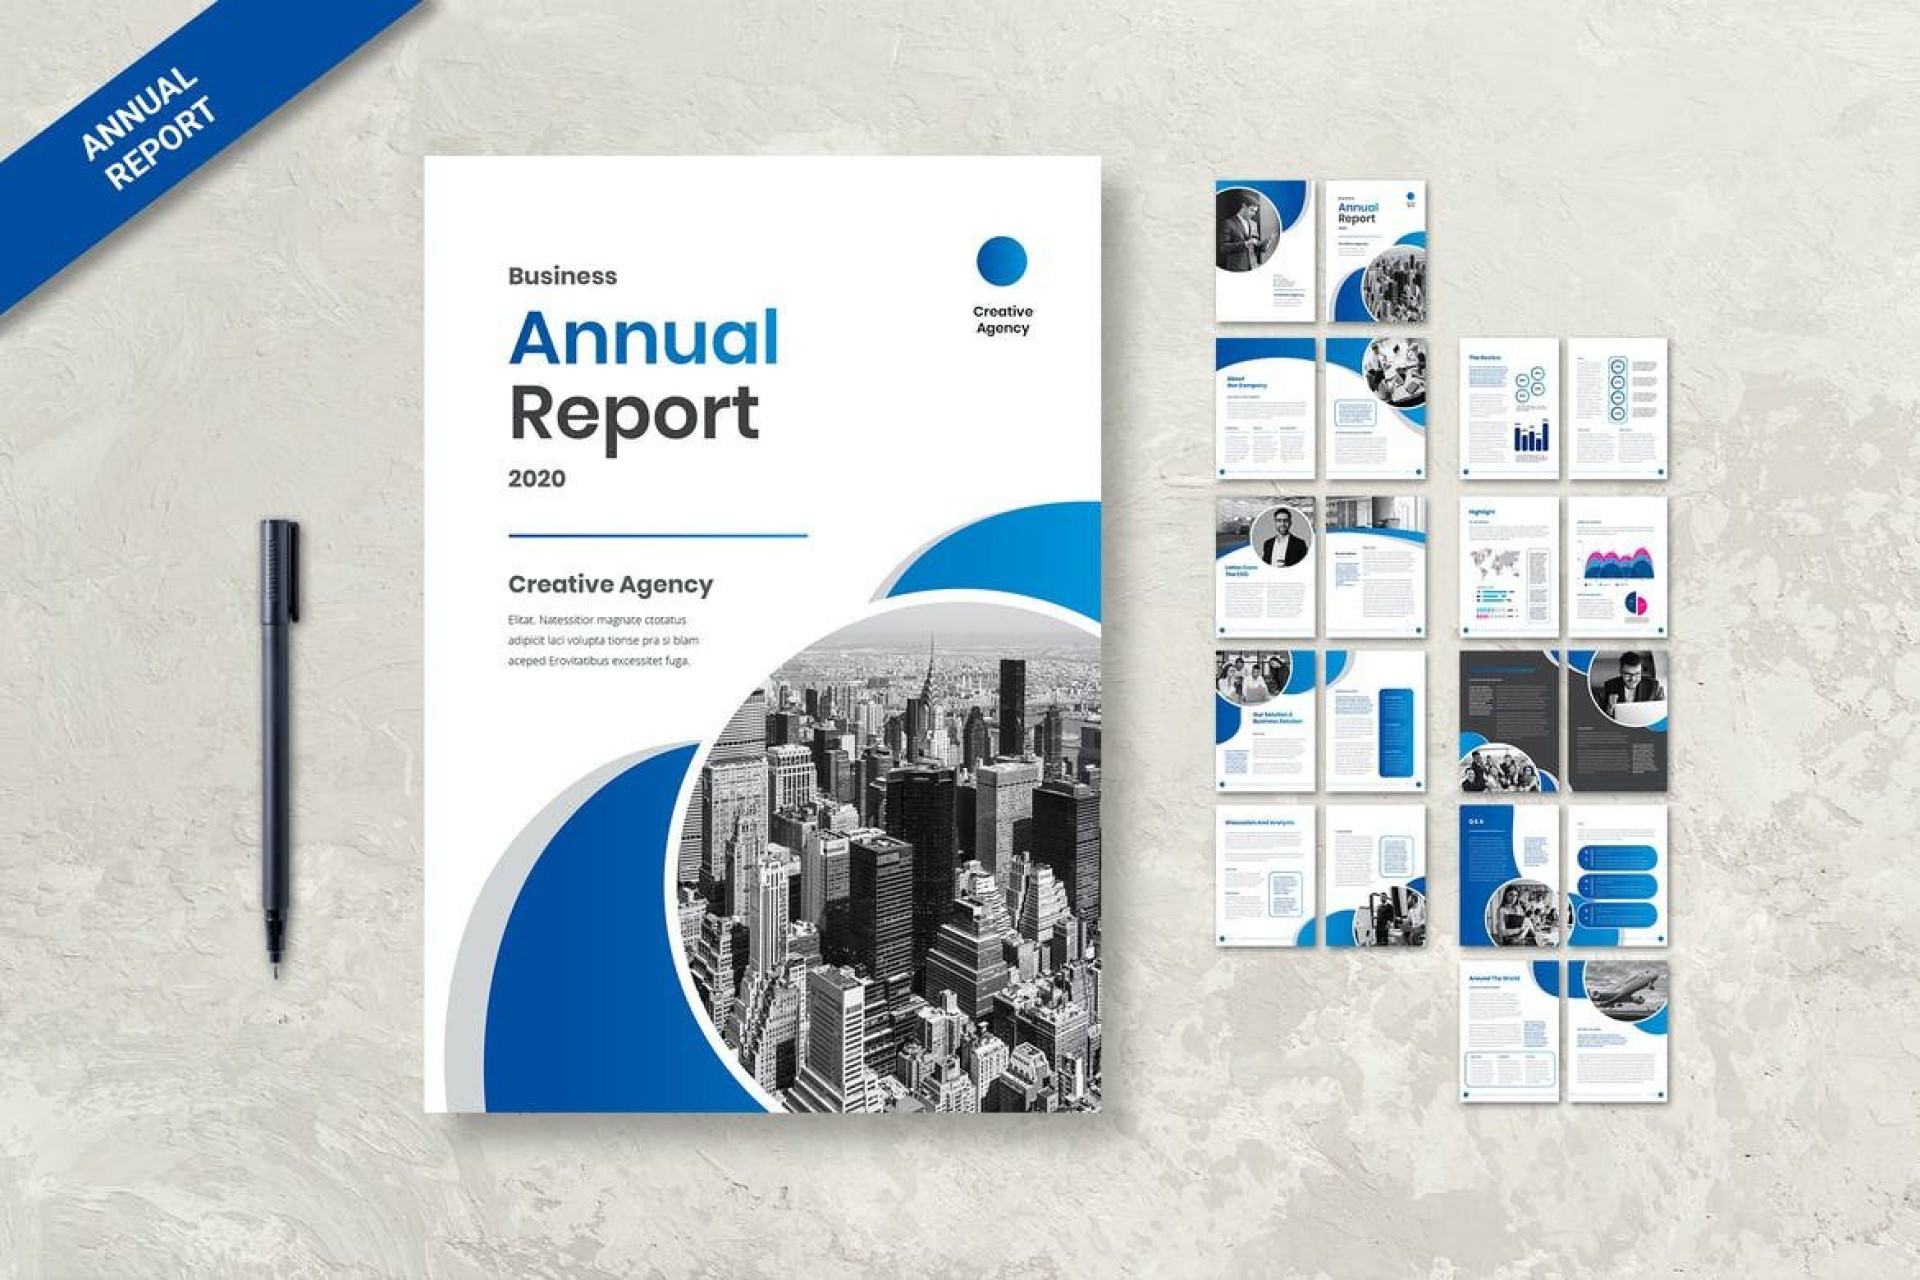 009 Wonderful Free Download Annual Report Cover Design Template High Resolution  Page In Word1920